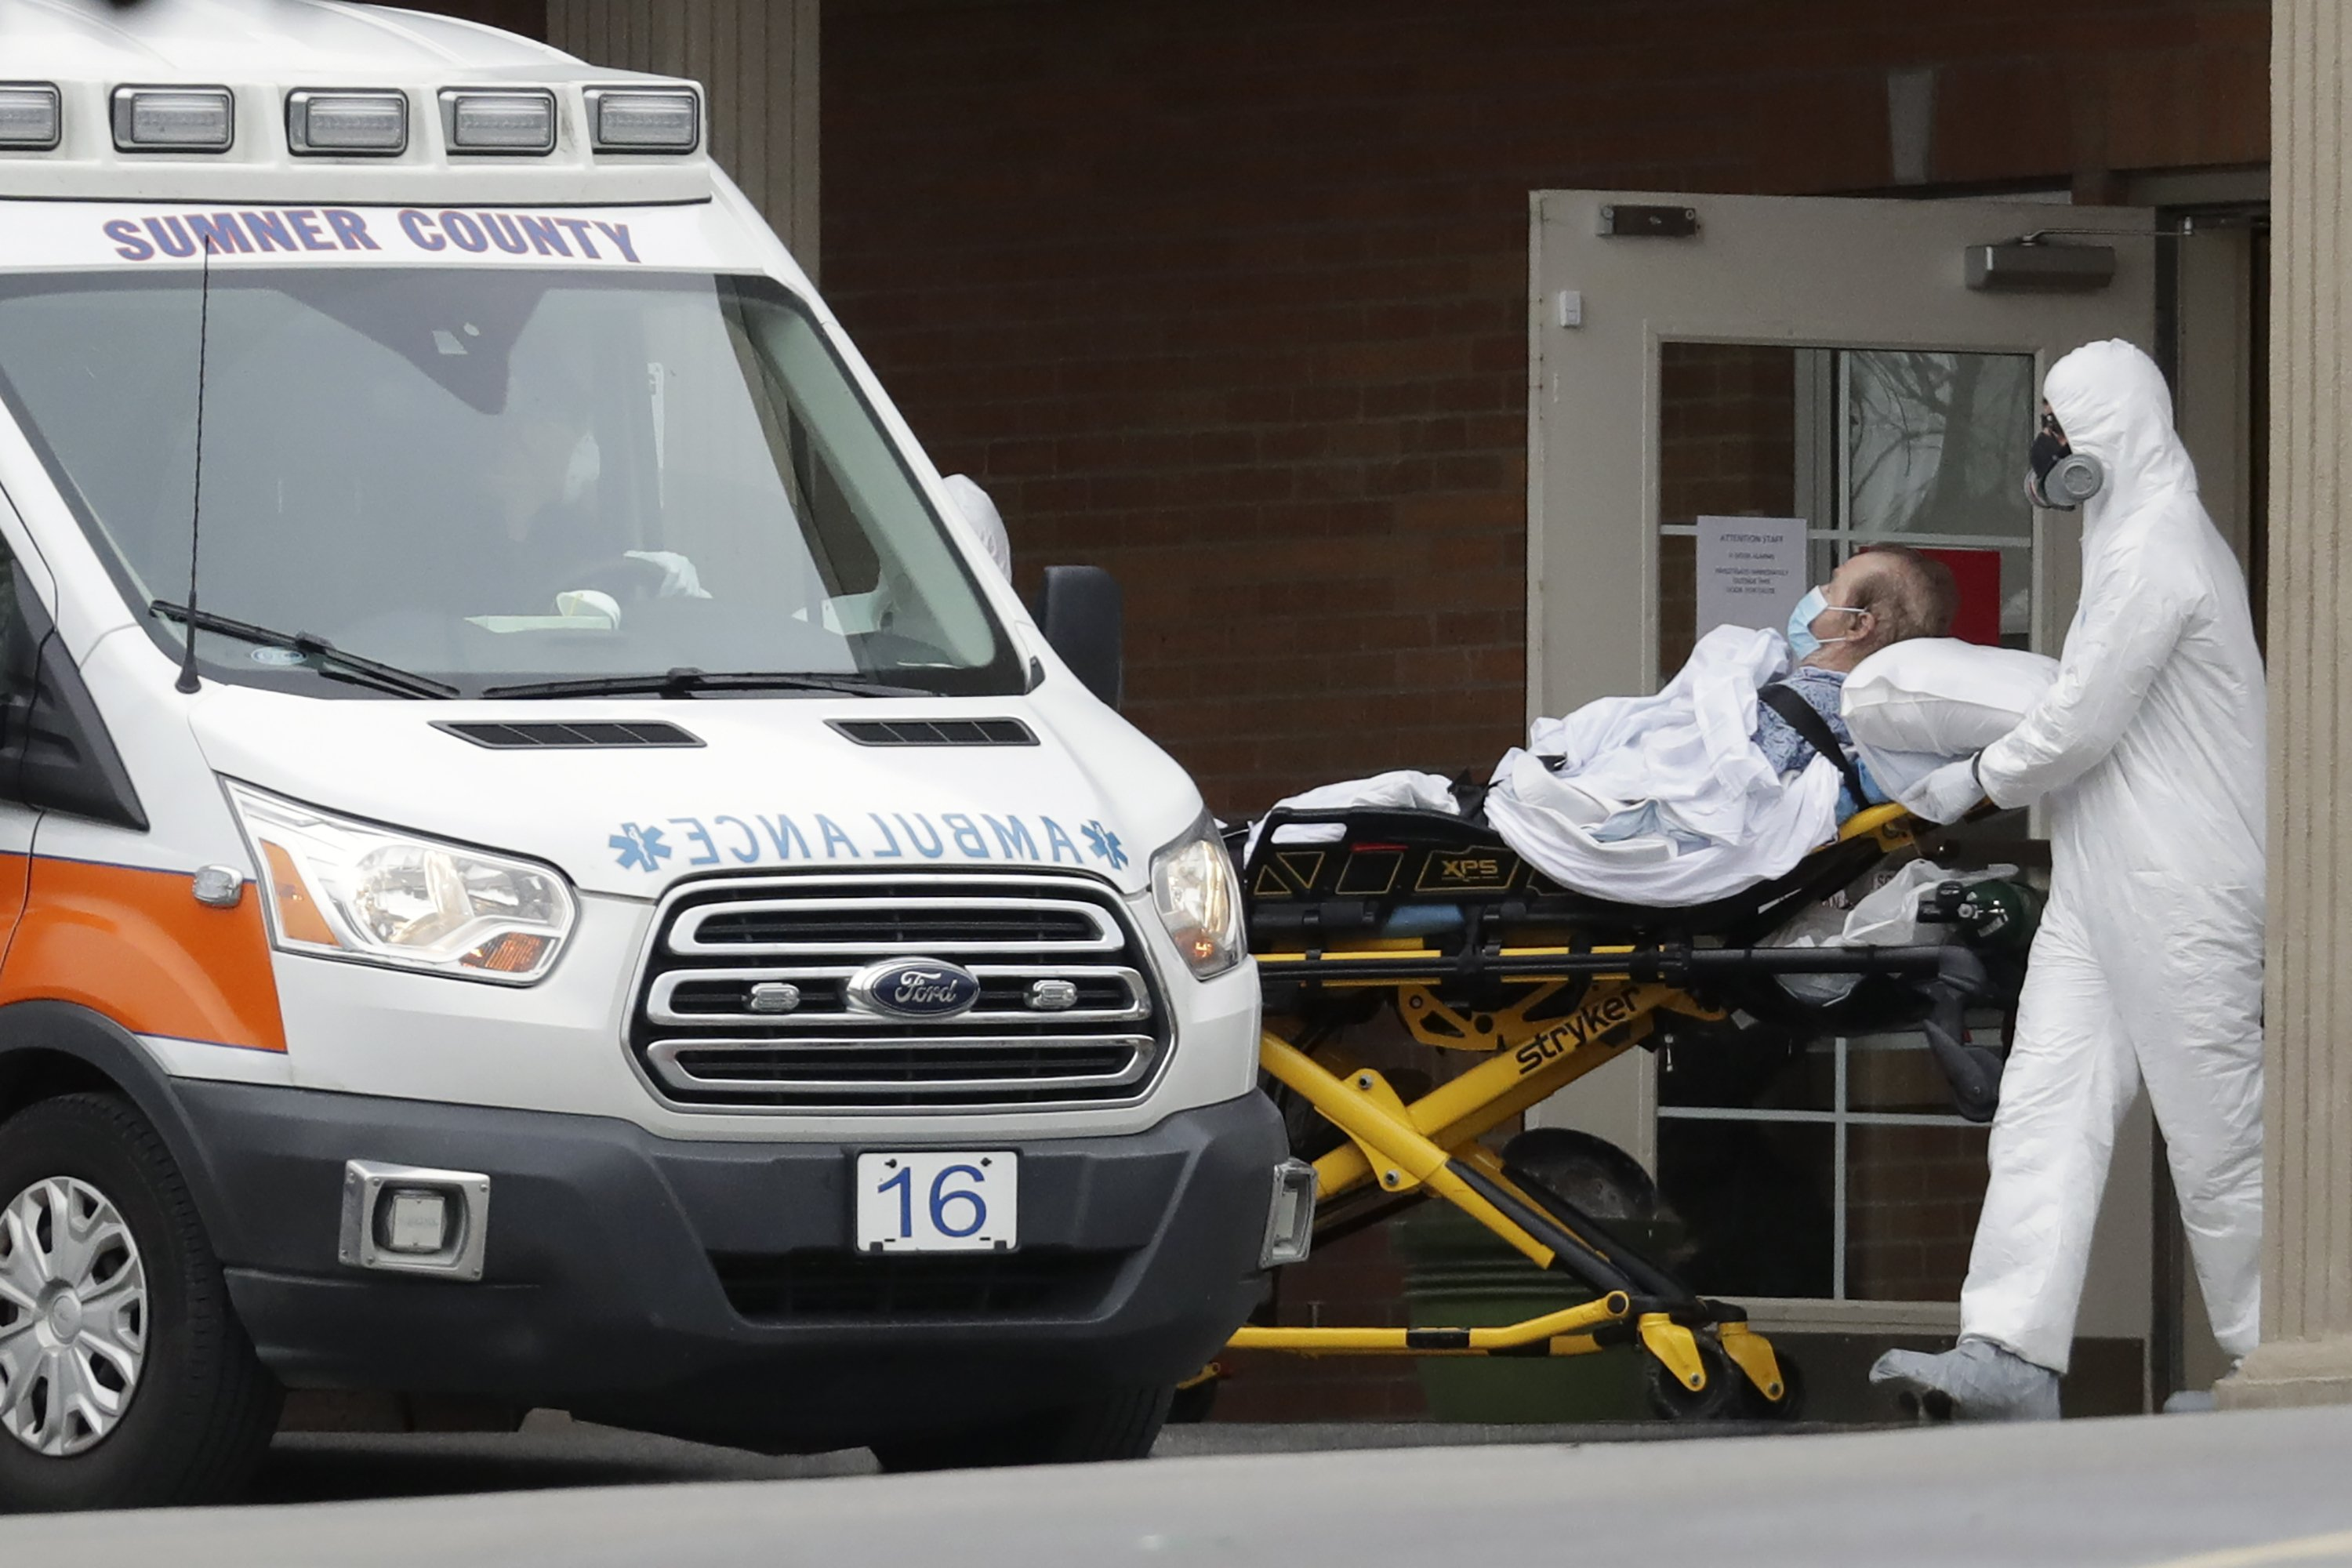 Nursing home infections, deaths surge amid lockdown measures